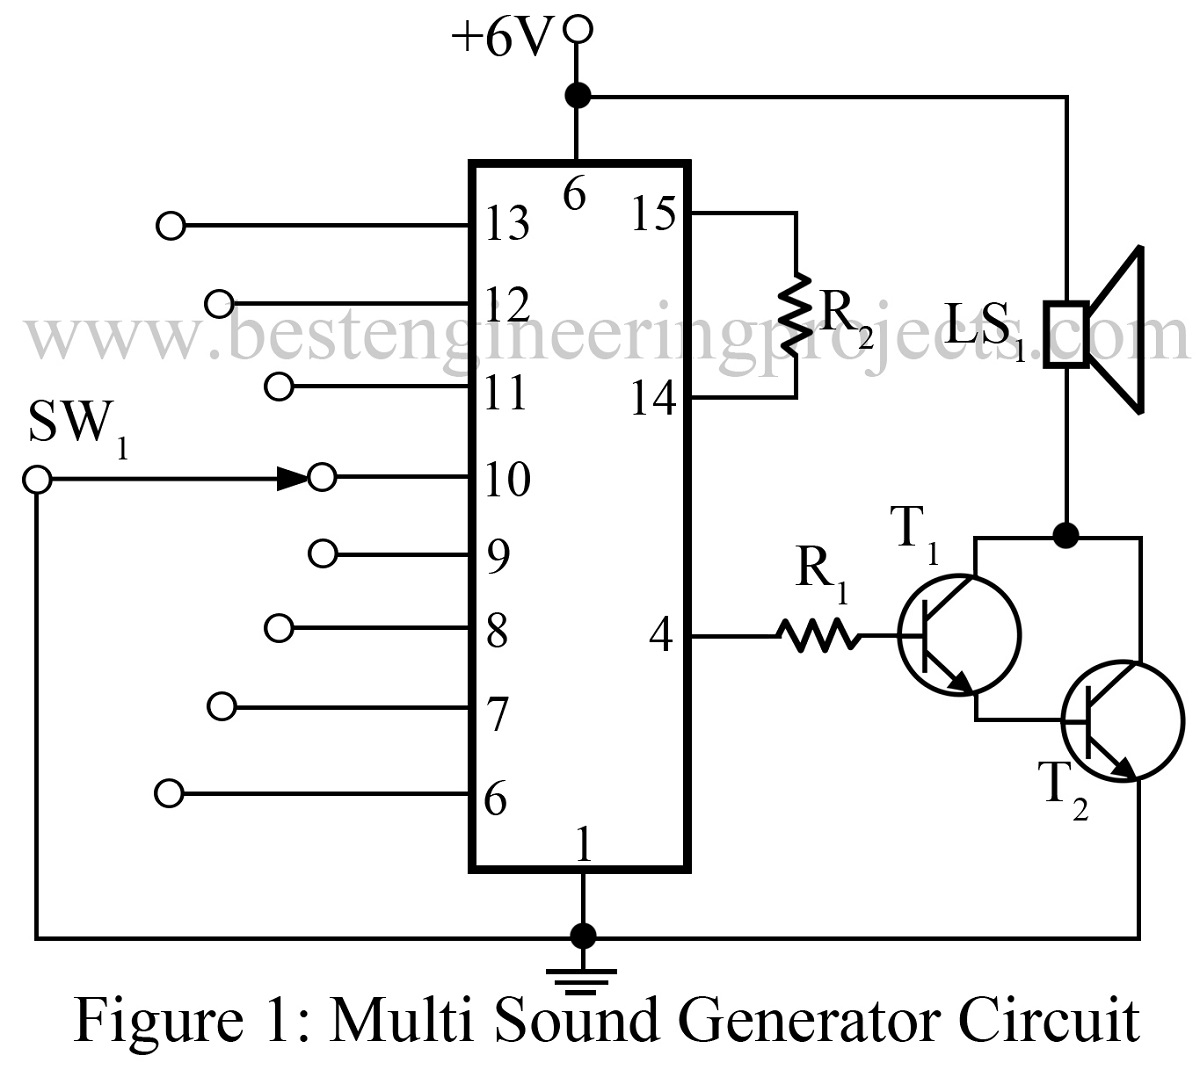 Sound Generator Schematic Diagrams Um3561 Siren Design Multi Circuit Best Engineering Projects Diagram Creator